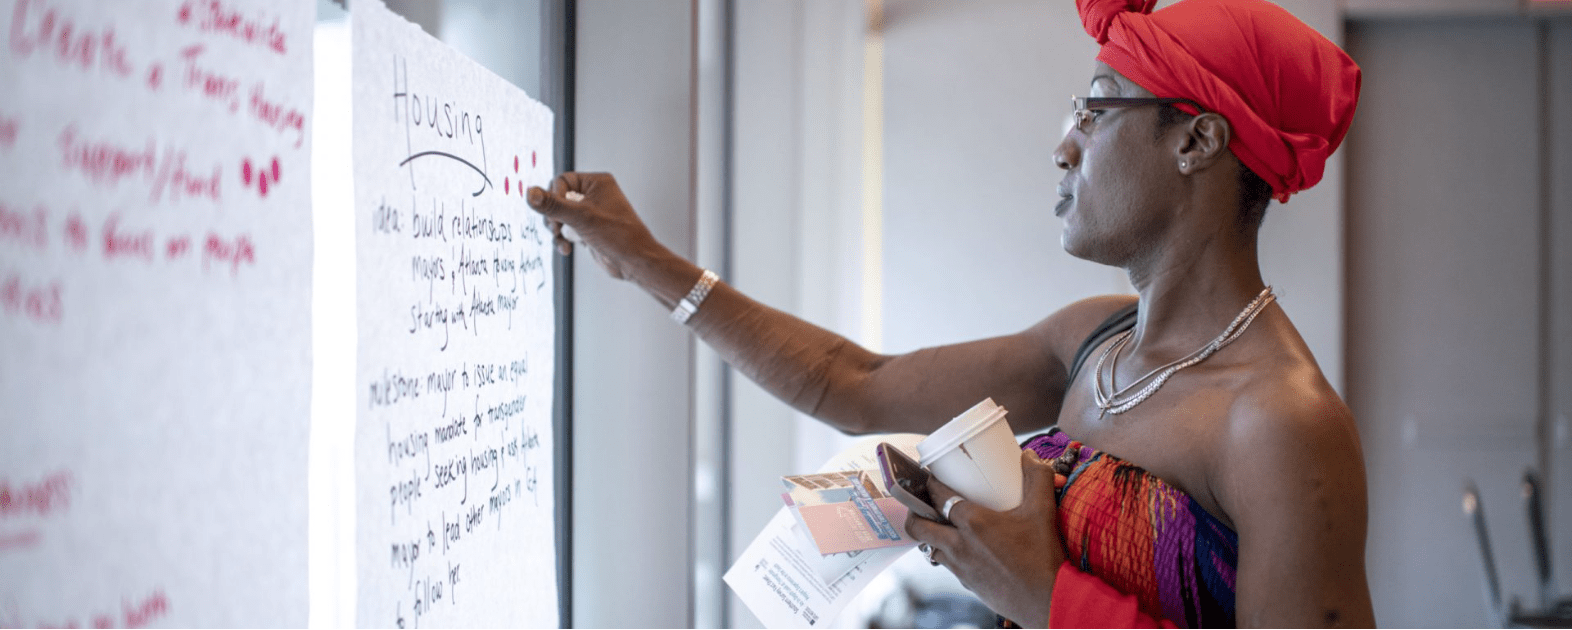 Diversity, Equity and Inclusion Experiences